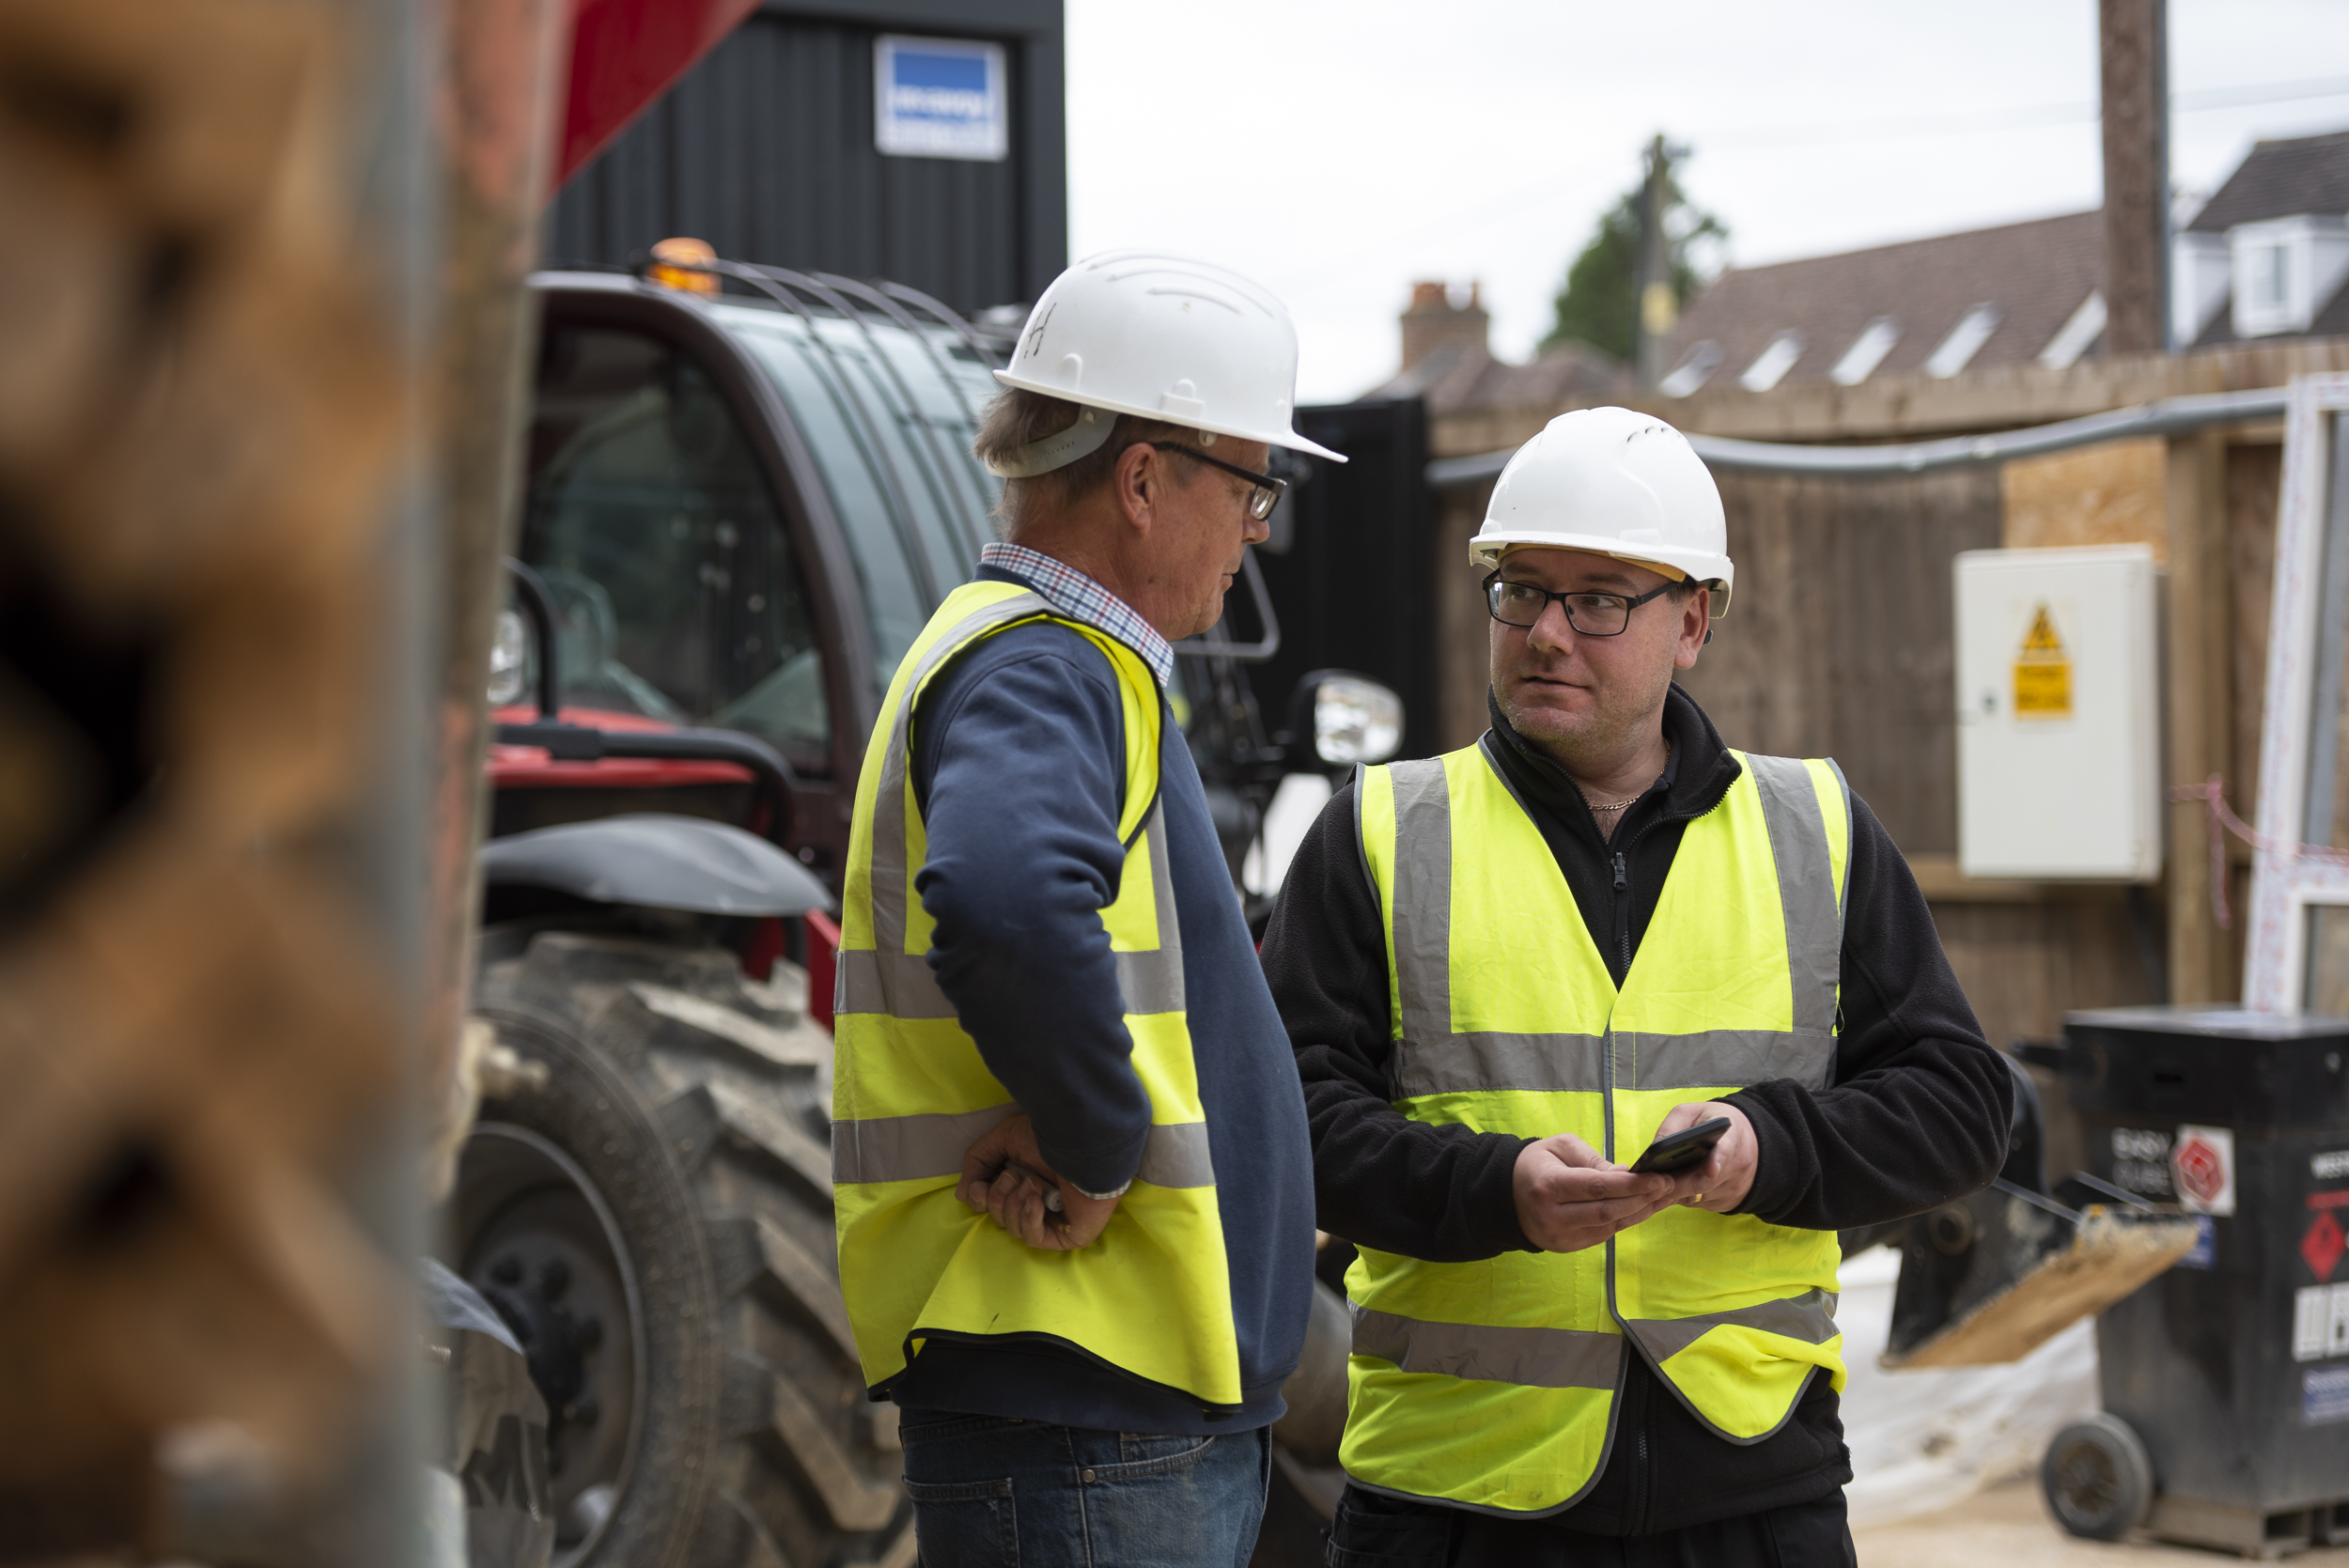 7 reasons to introduce biometric workforce management to your construction firm